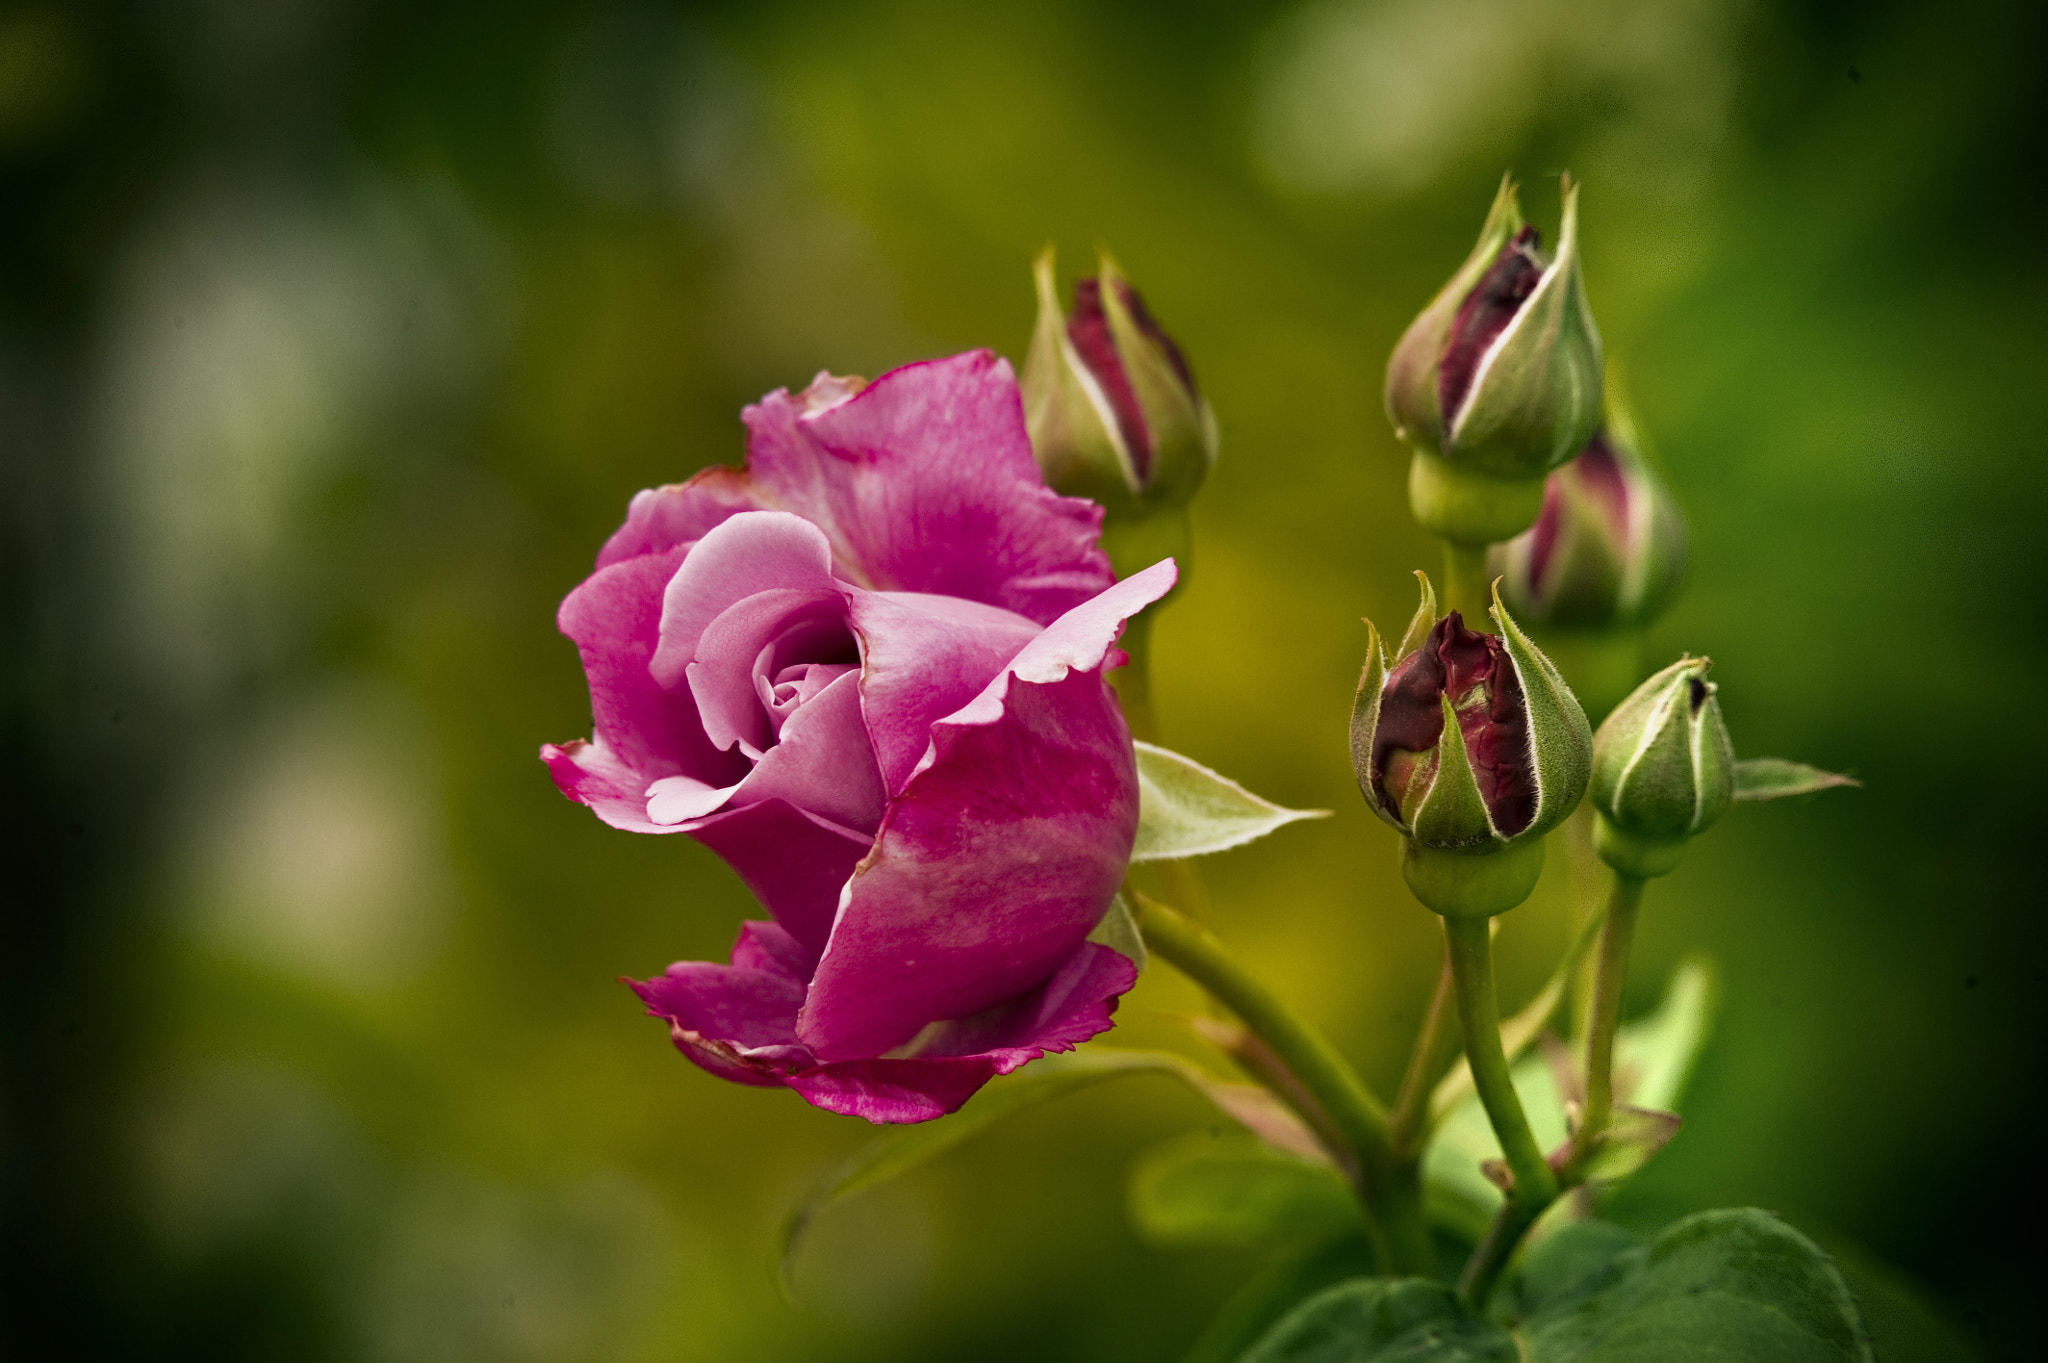 Photograph Rosa del rosal by Miguel Nieto Galisteo on 500px